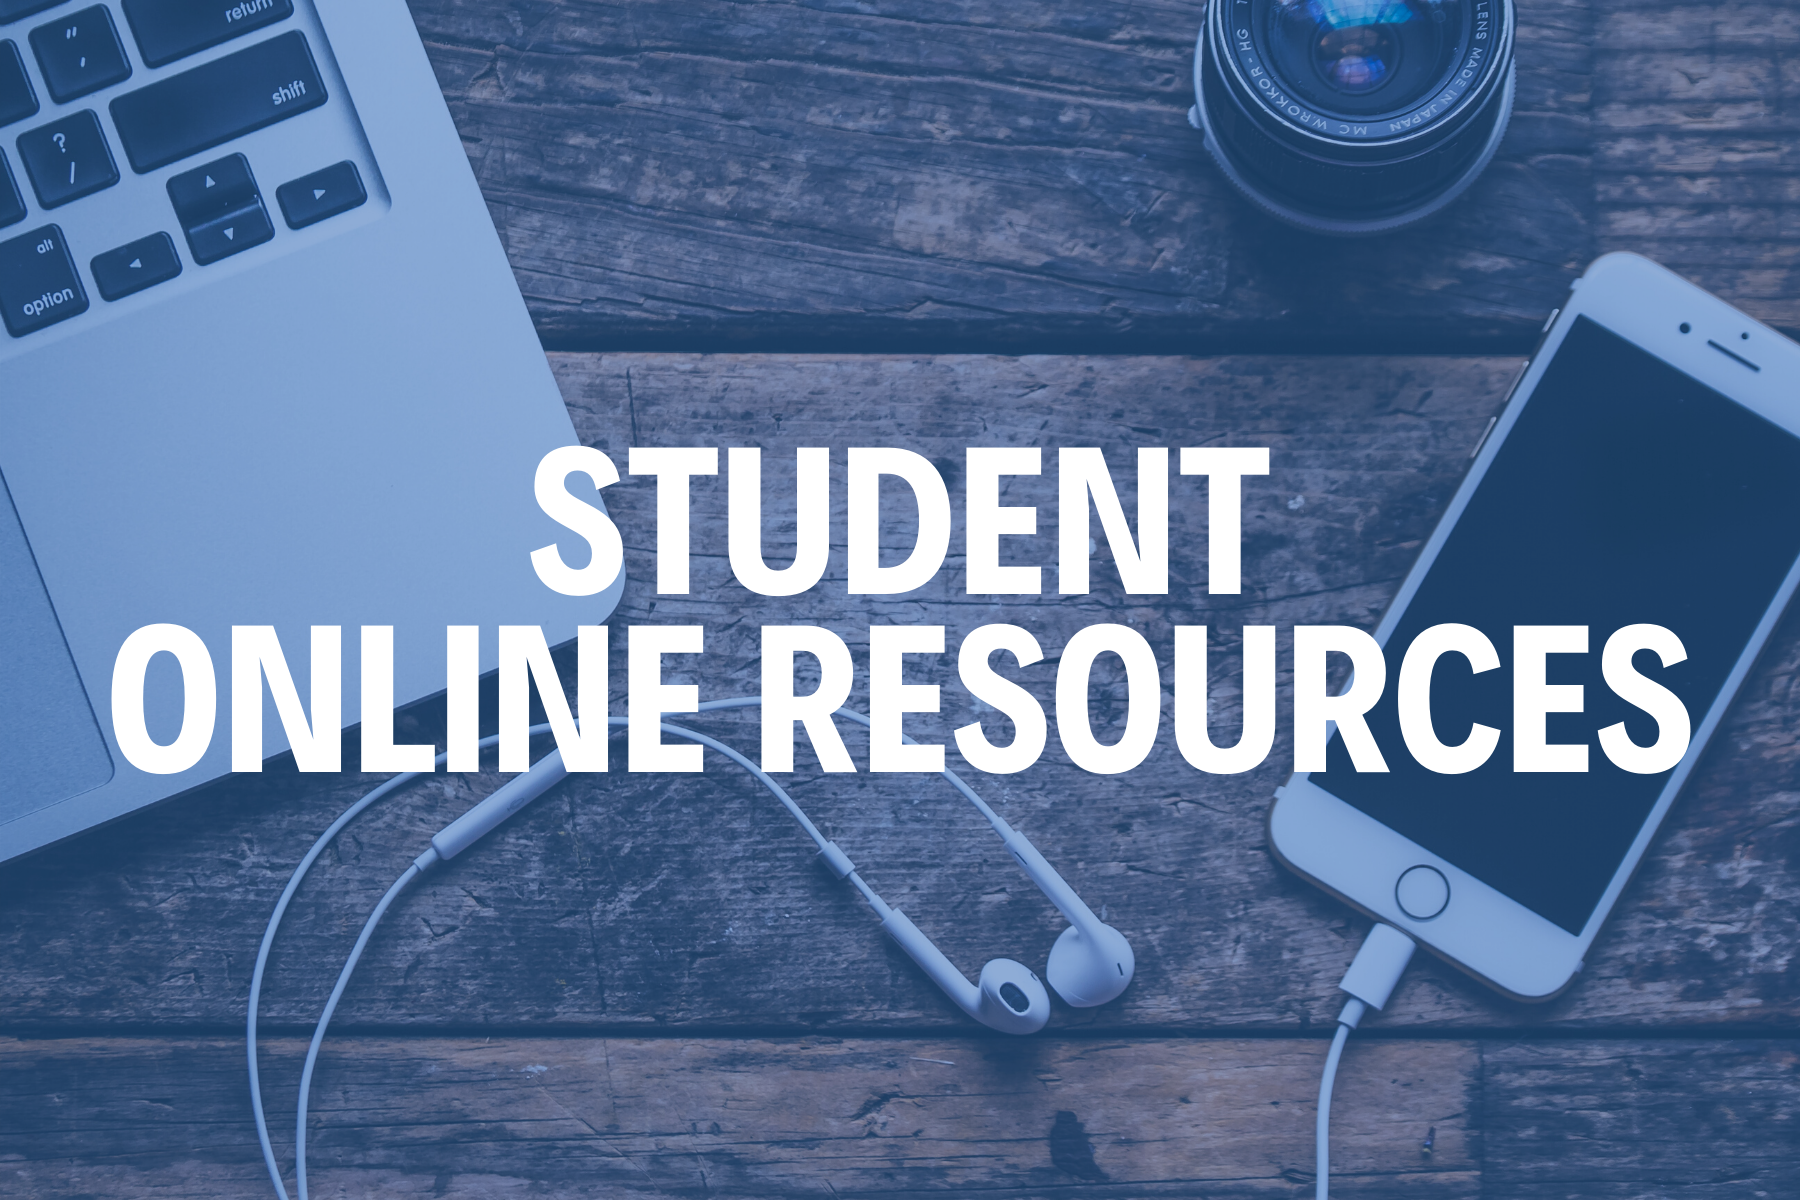 STUDENT ONLINE RESOURCES